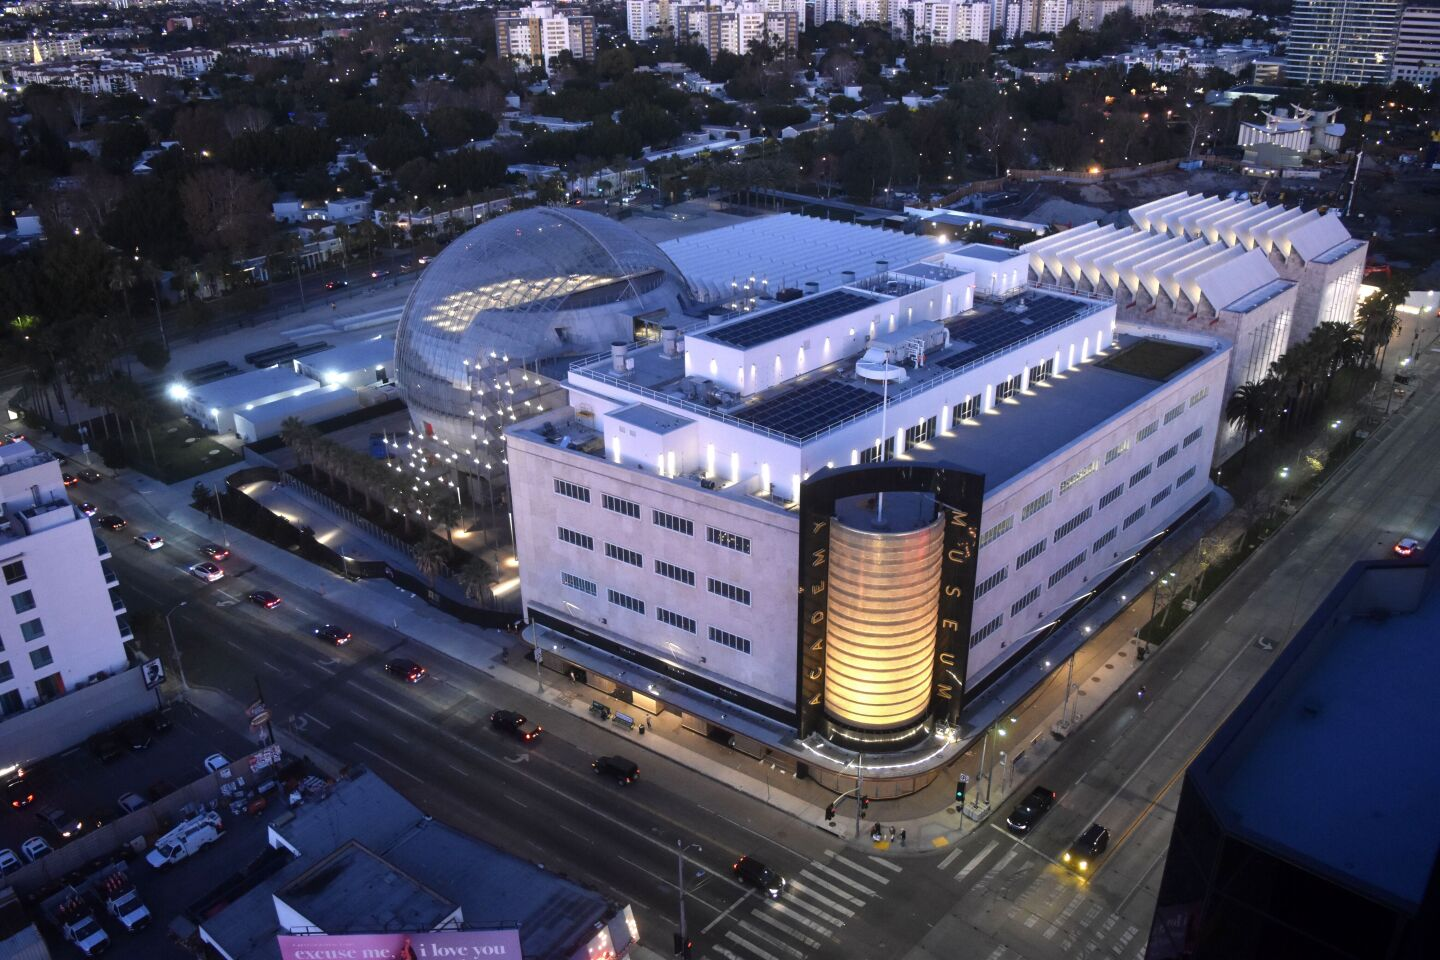 An aerial view of the Academy Museum of Motion Pictures is shot at night.